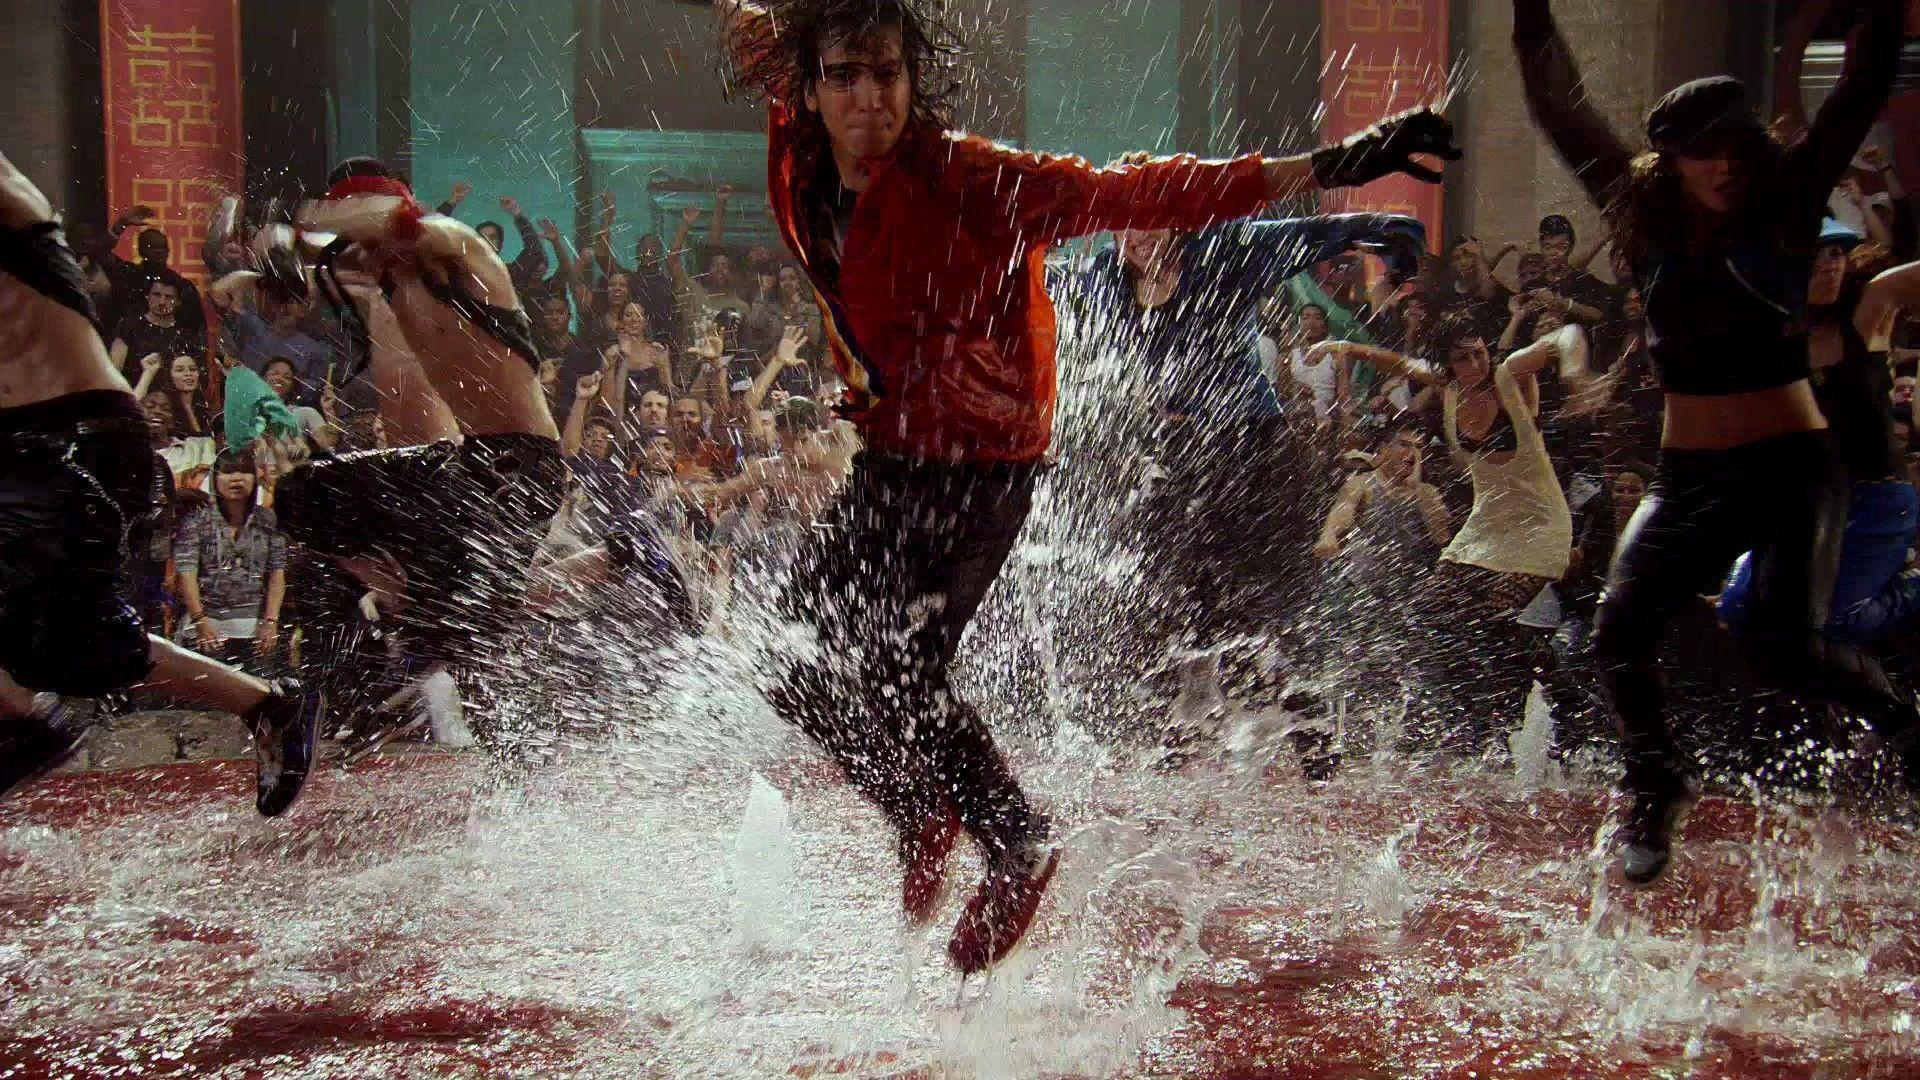 The Movie Step Up wallpapers and images - wallpapers, pictures, photos